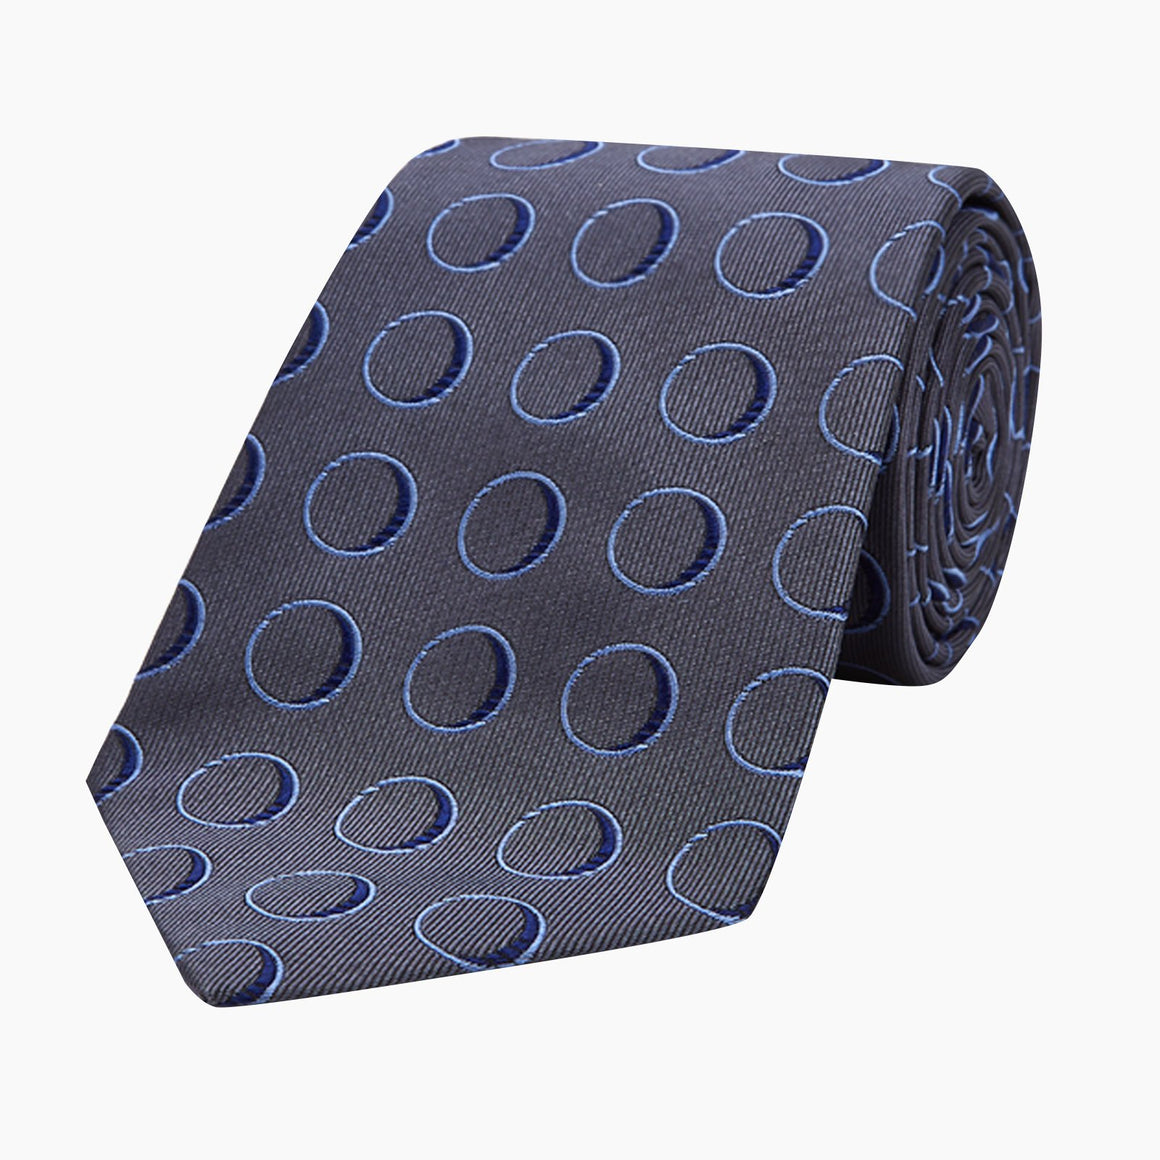 Silk Tie By Turnbull & Asser - Die Another Day Edition